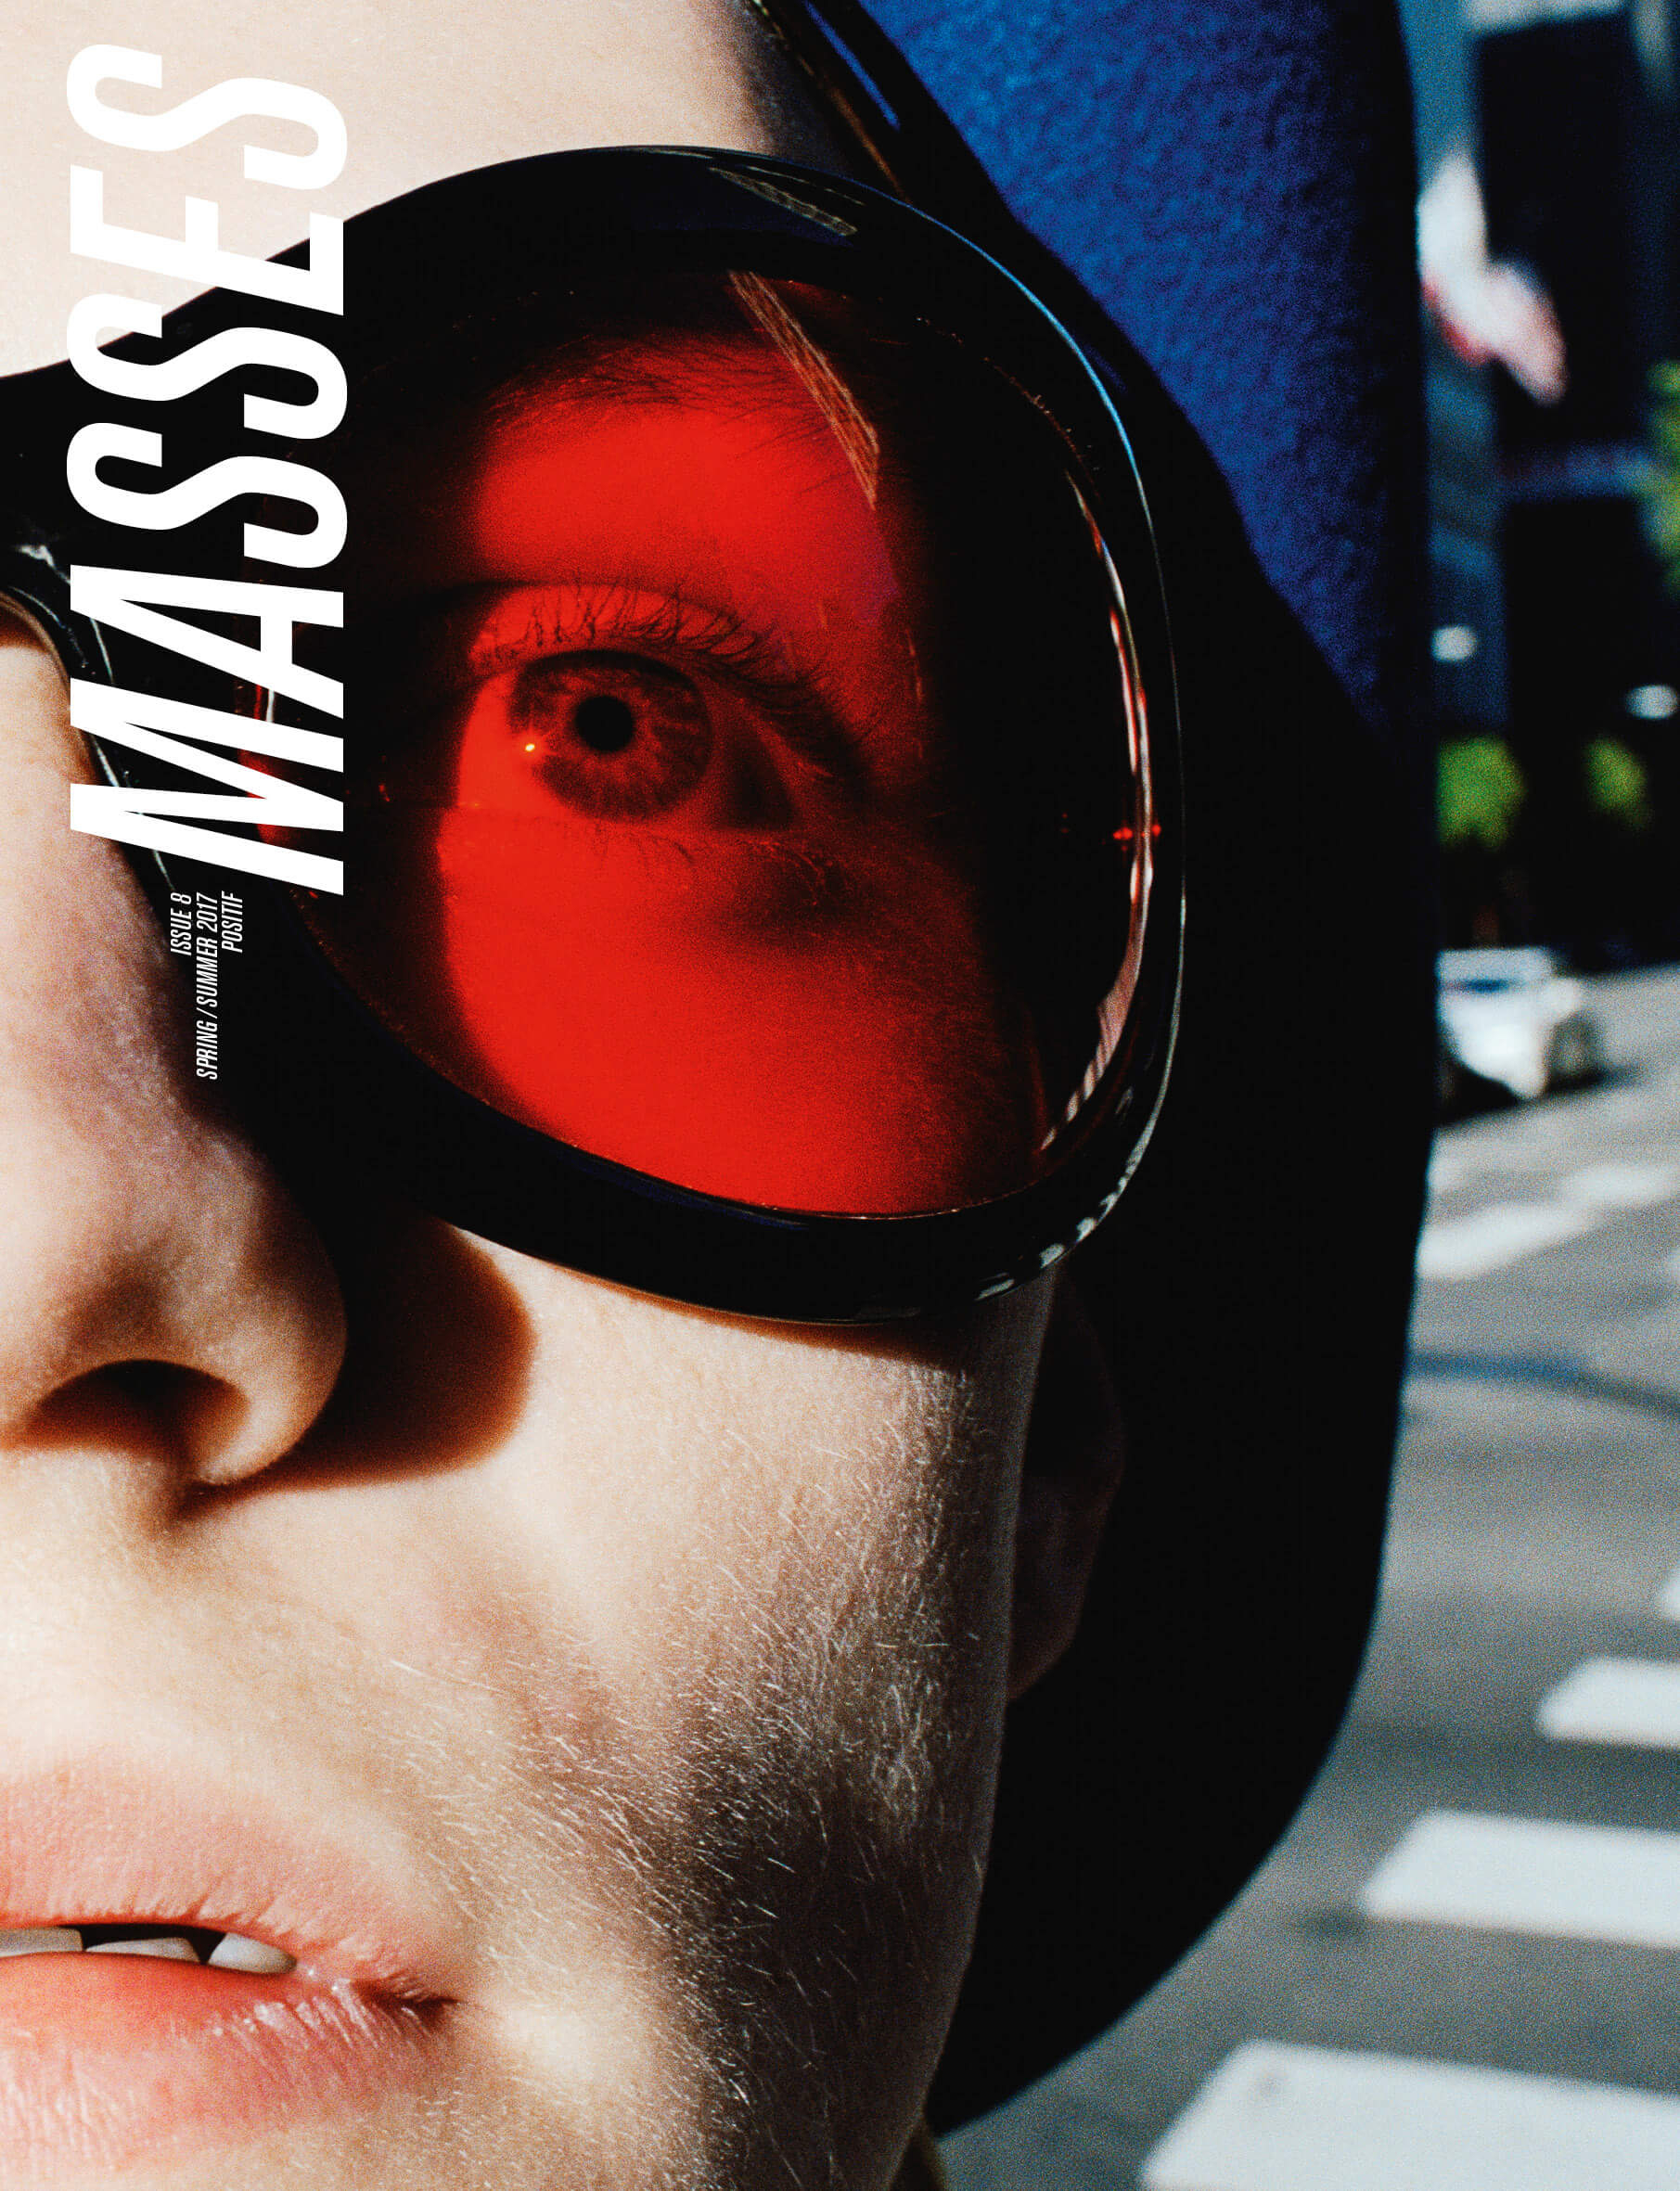 MASSES Magazine Issue No. 8 – Cover photographed by CG Watkins and Jay Massacret with Turner Barbur